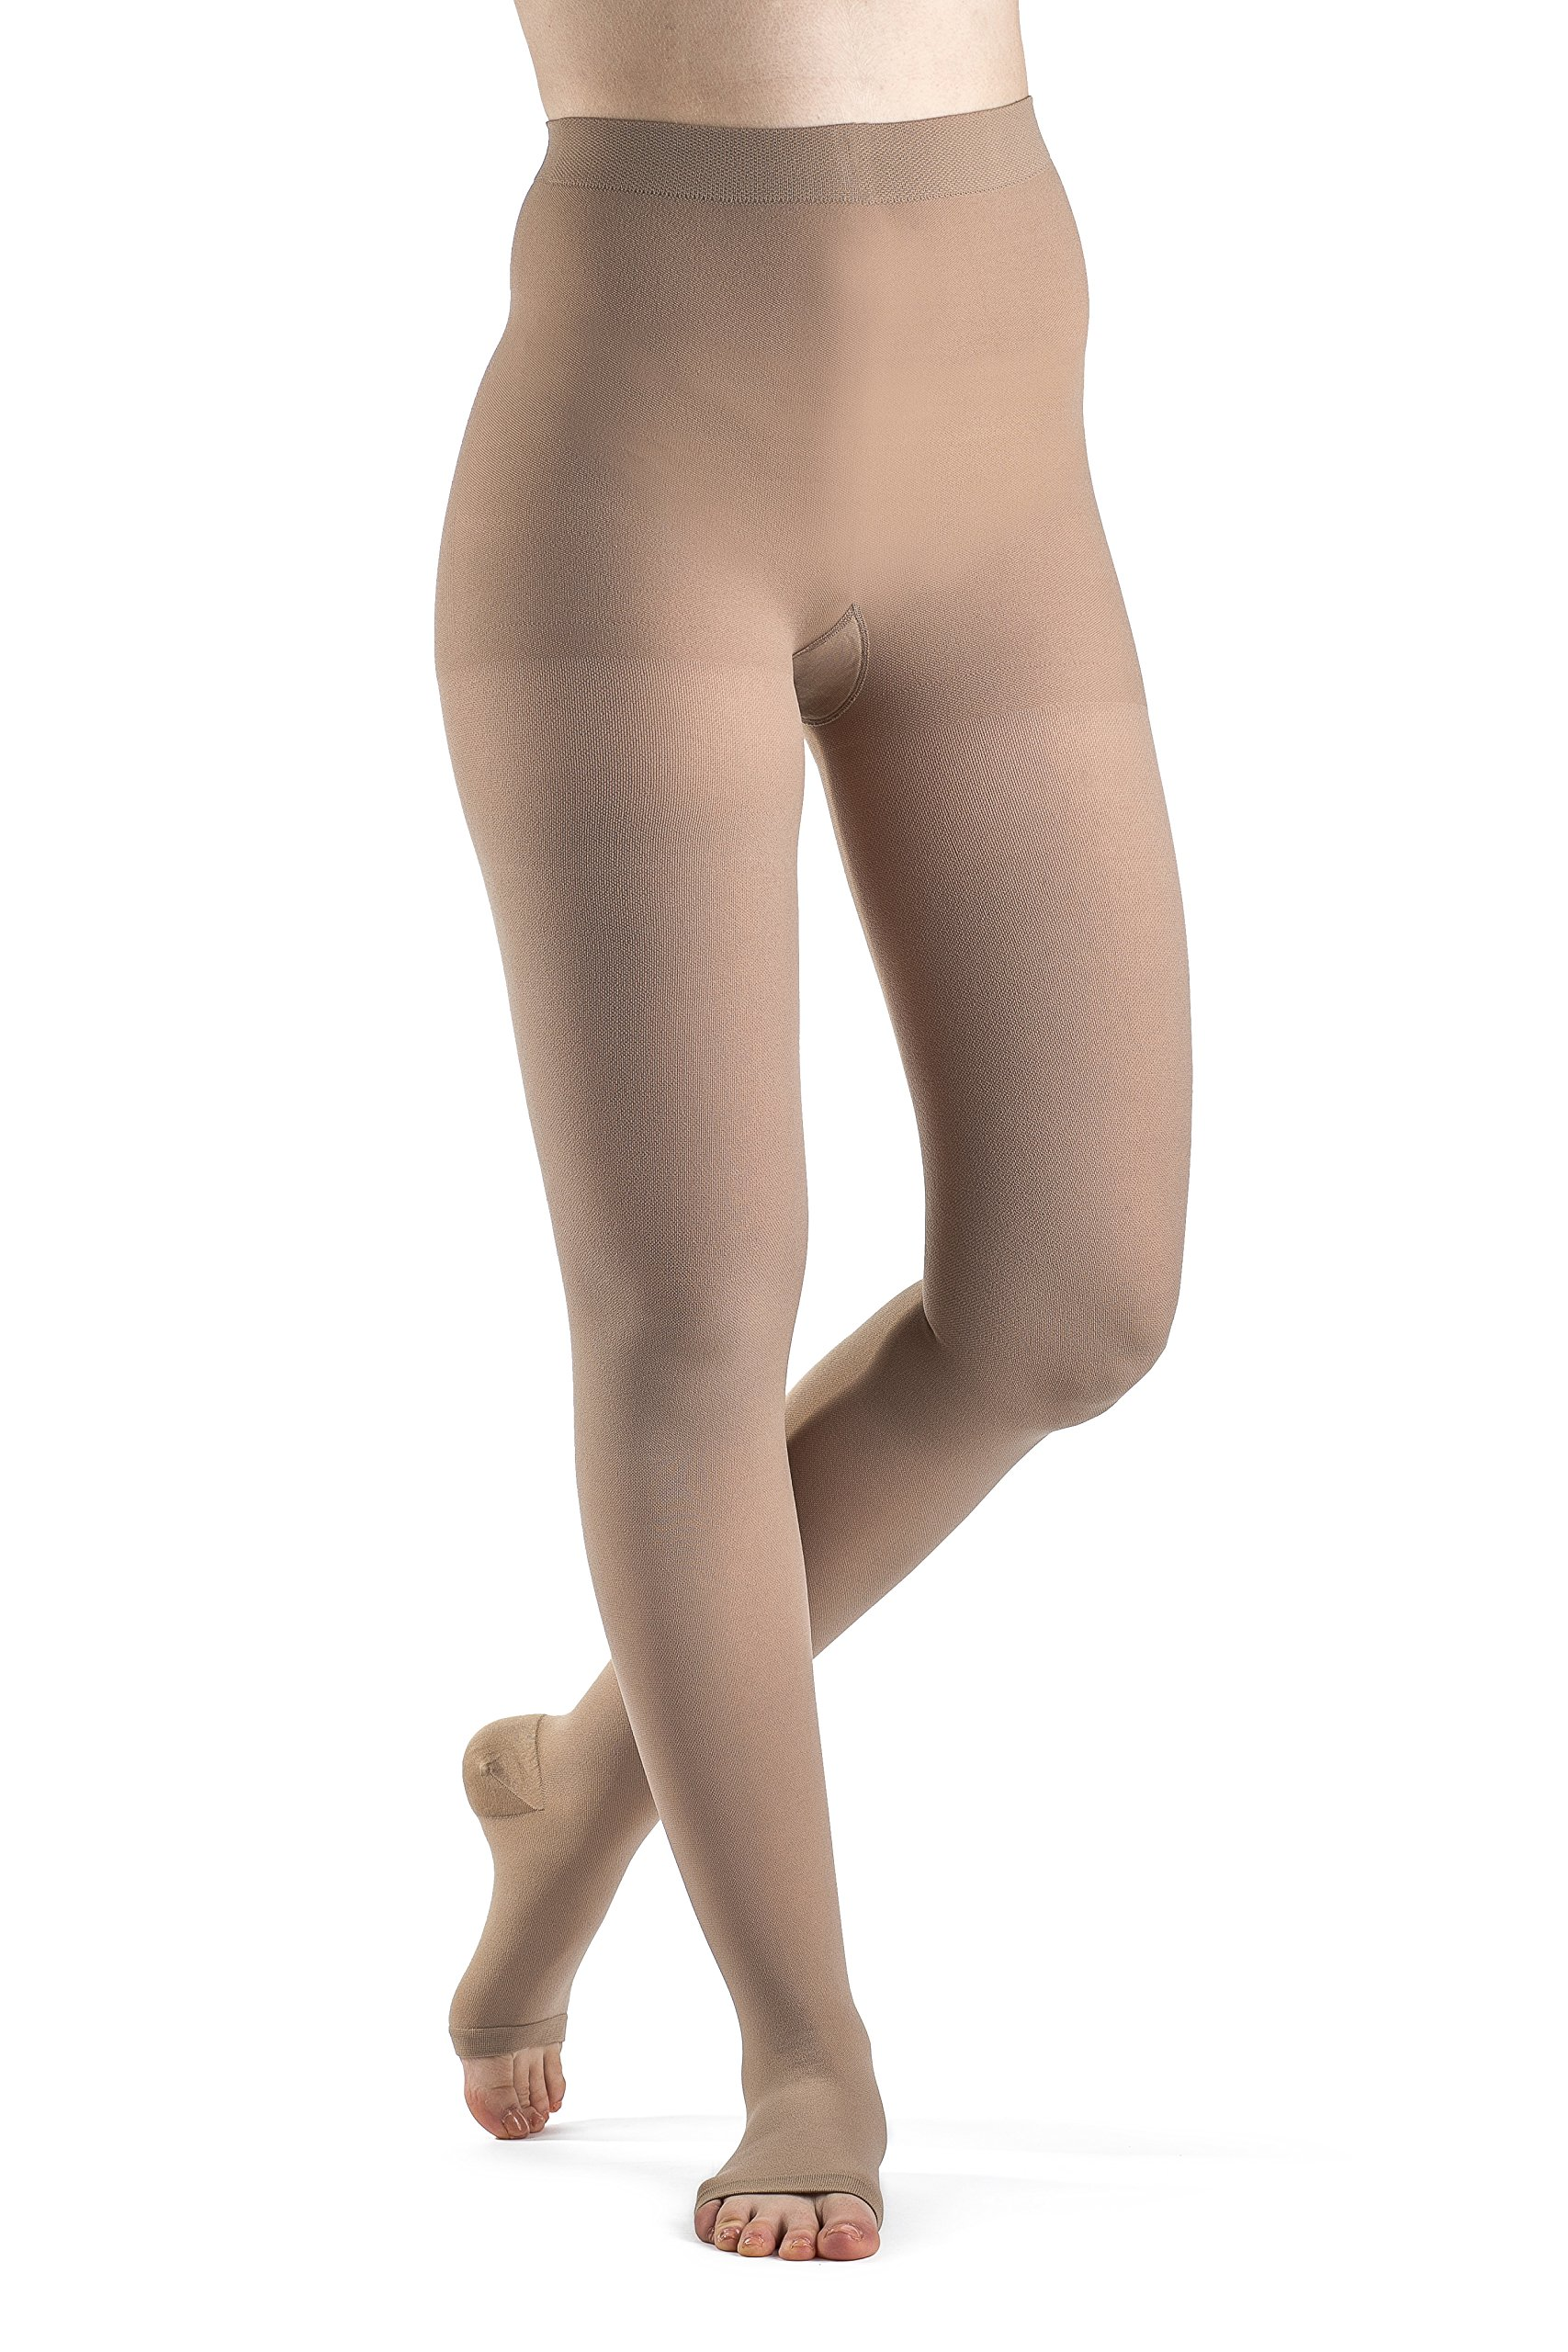 SIGVARIS Women's Access 970 Open-Toe Pantyhose Medical Compression 30-40mmHg